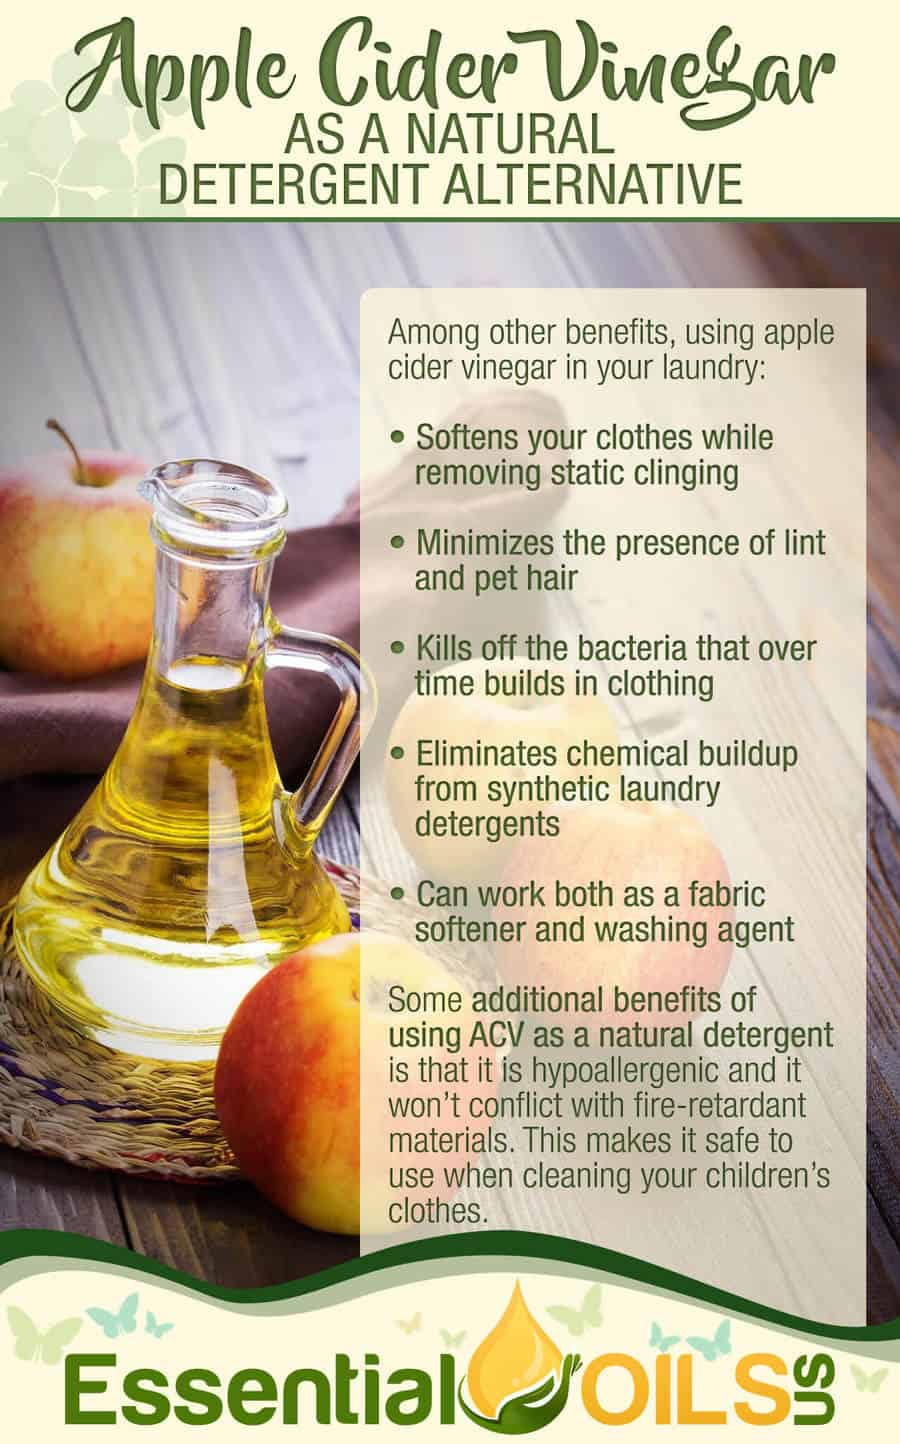 Apple Cider Vinegar - Benefits